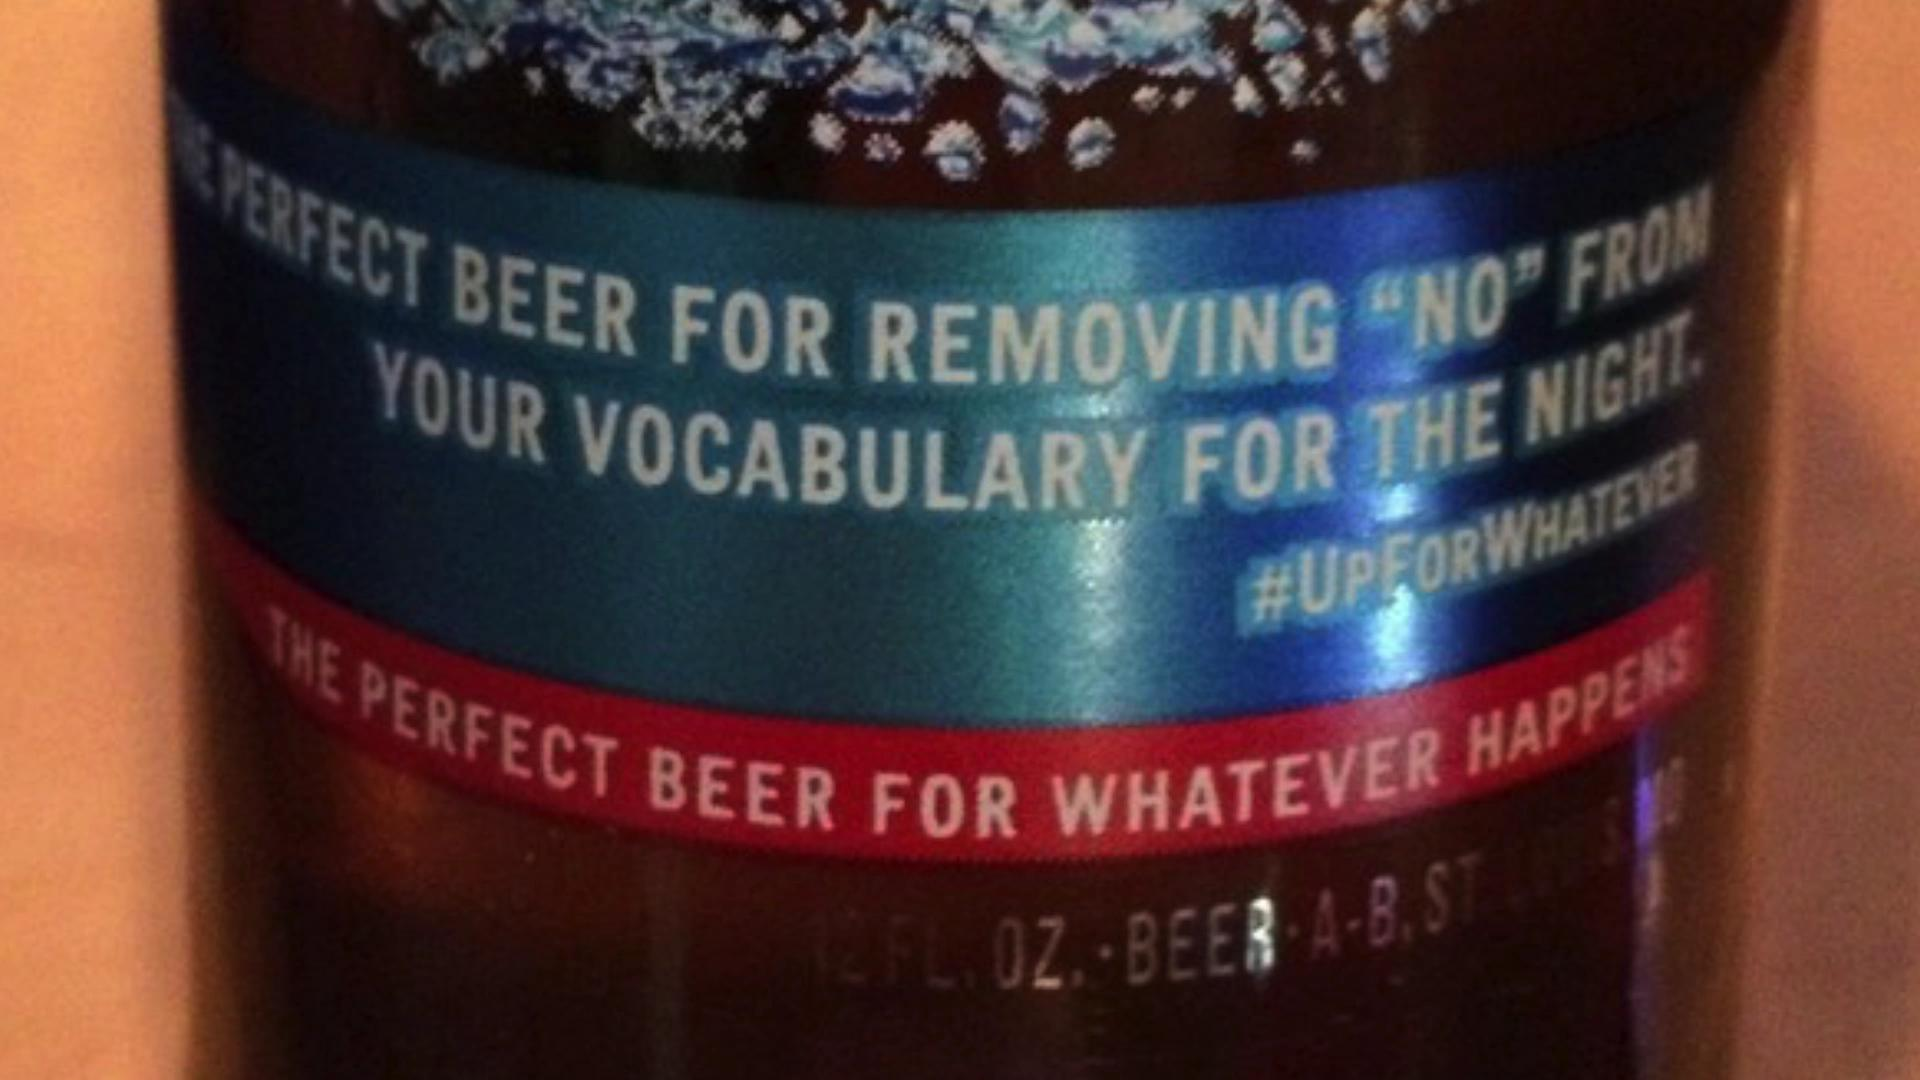 Bud light apologizes for removing no label mozeypictures Gallery